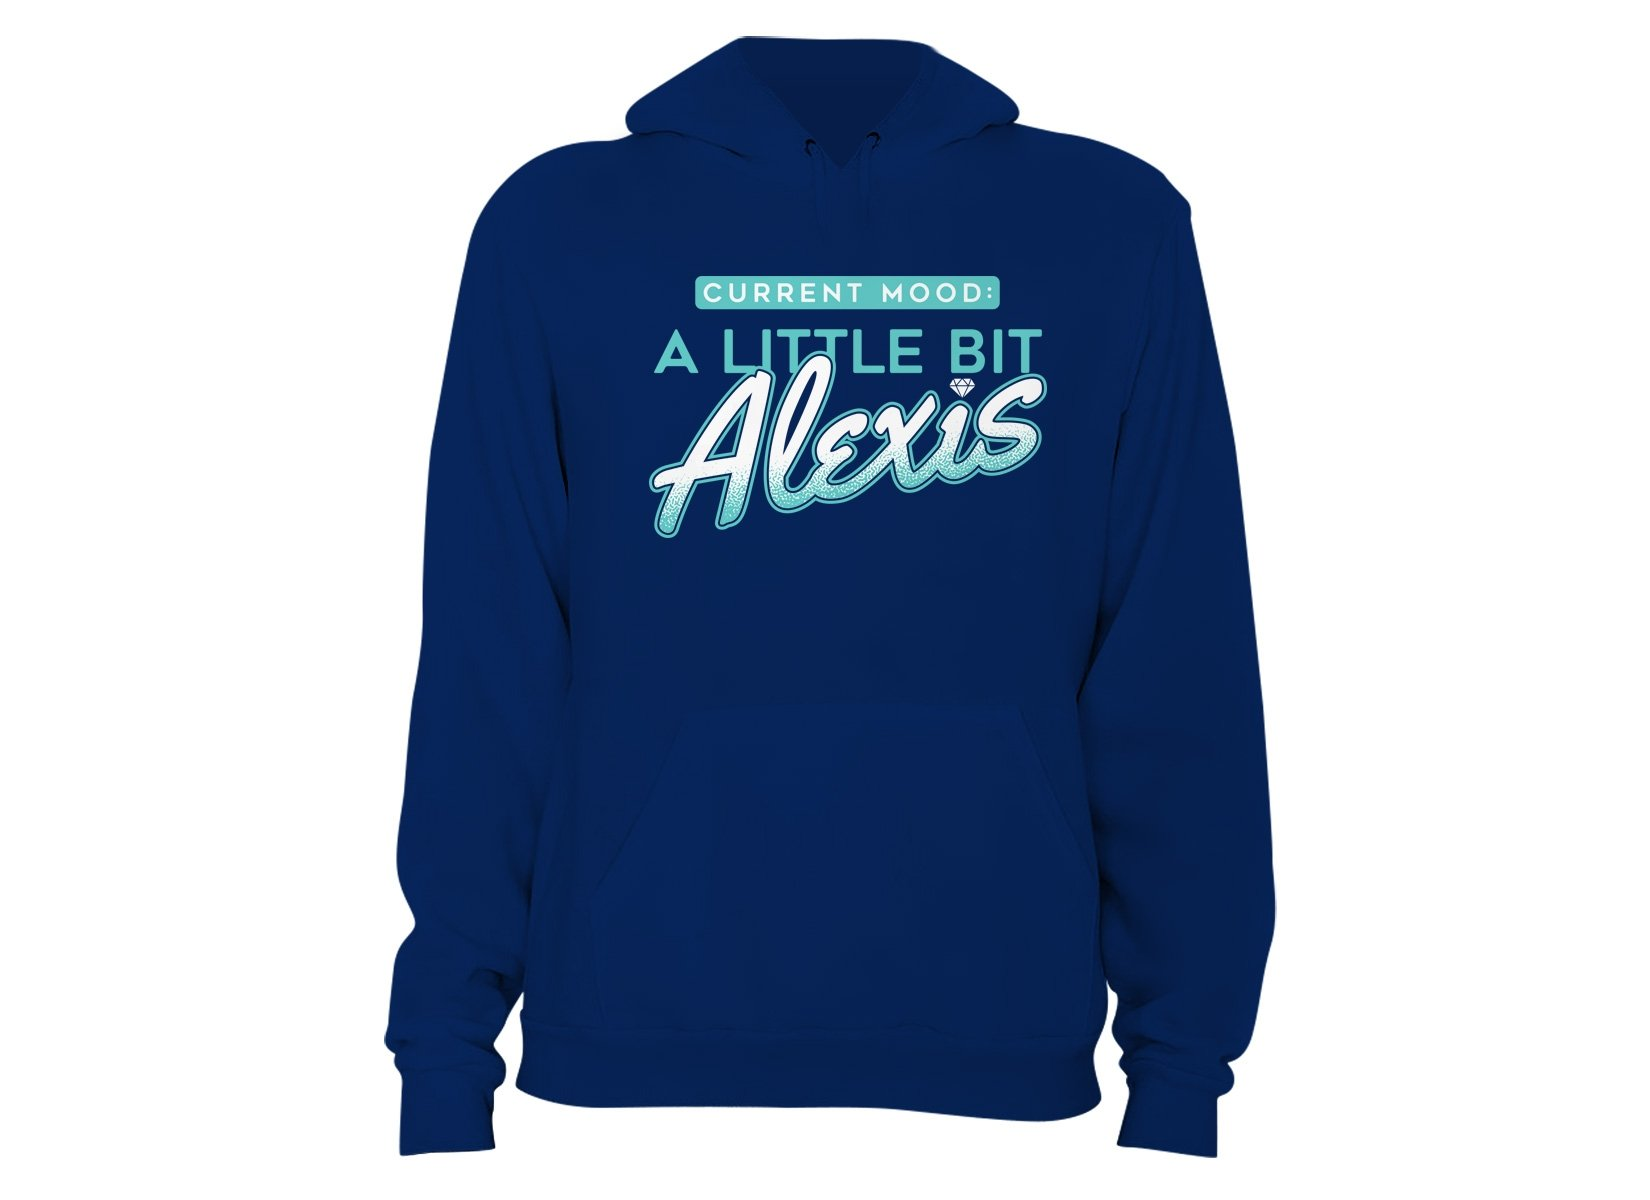 A Little Bit Alexis on Hoodie